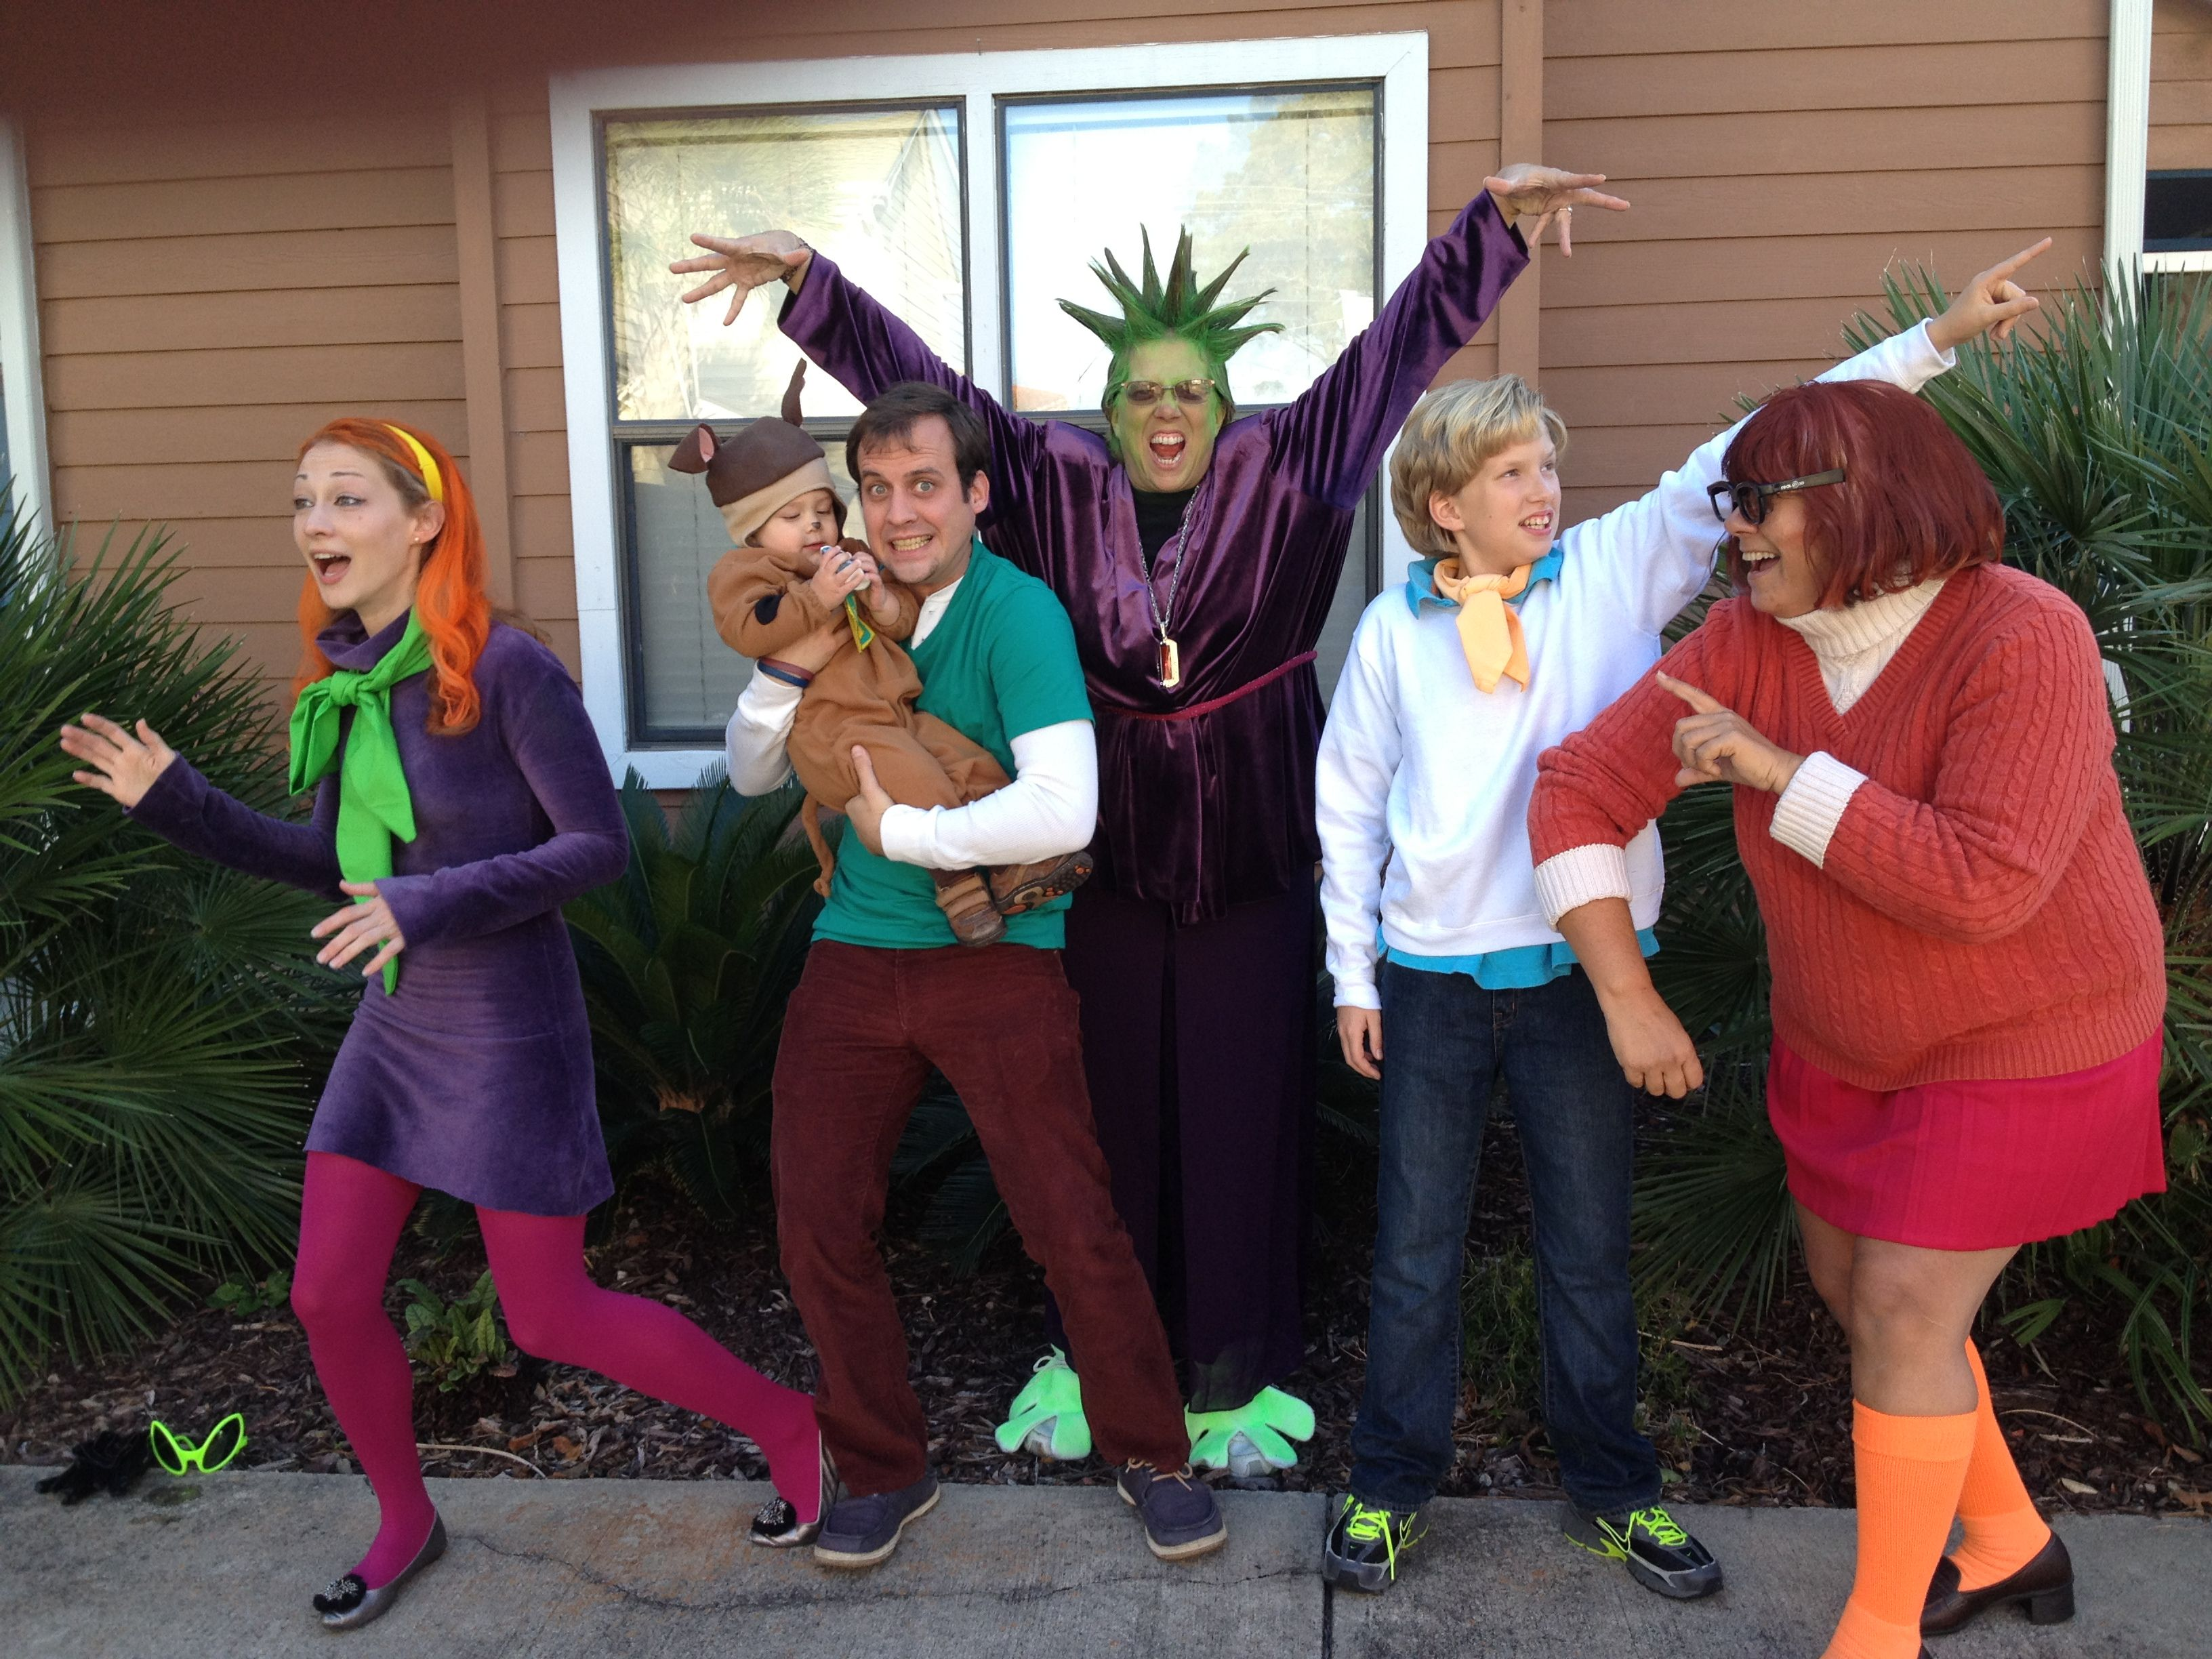 Scooby doo and the gang family Halloween costume- toddler, group ...